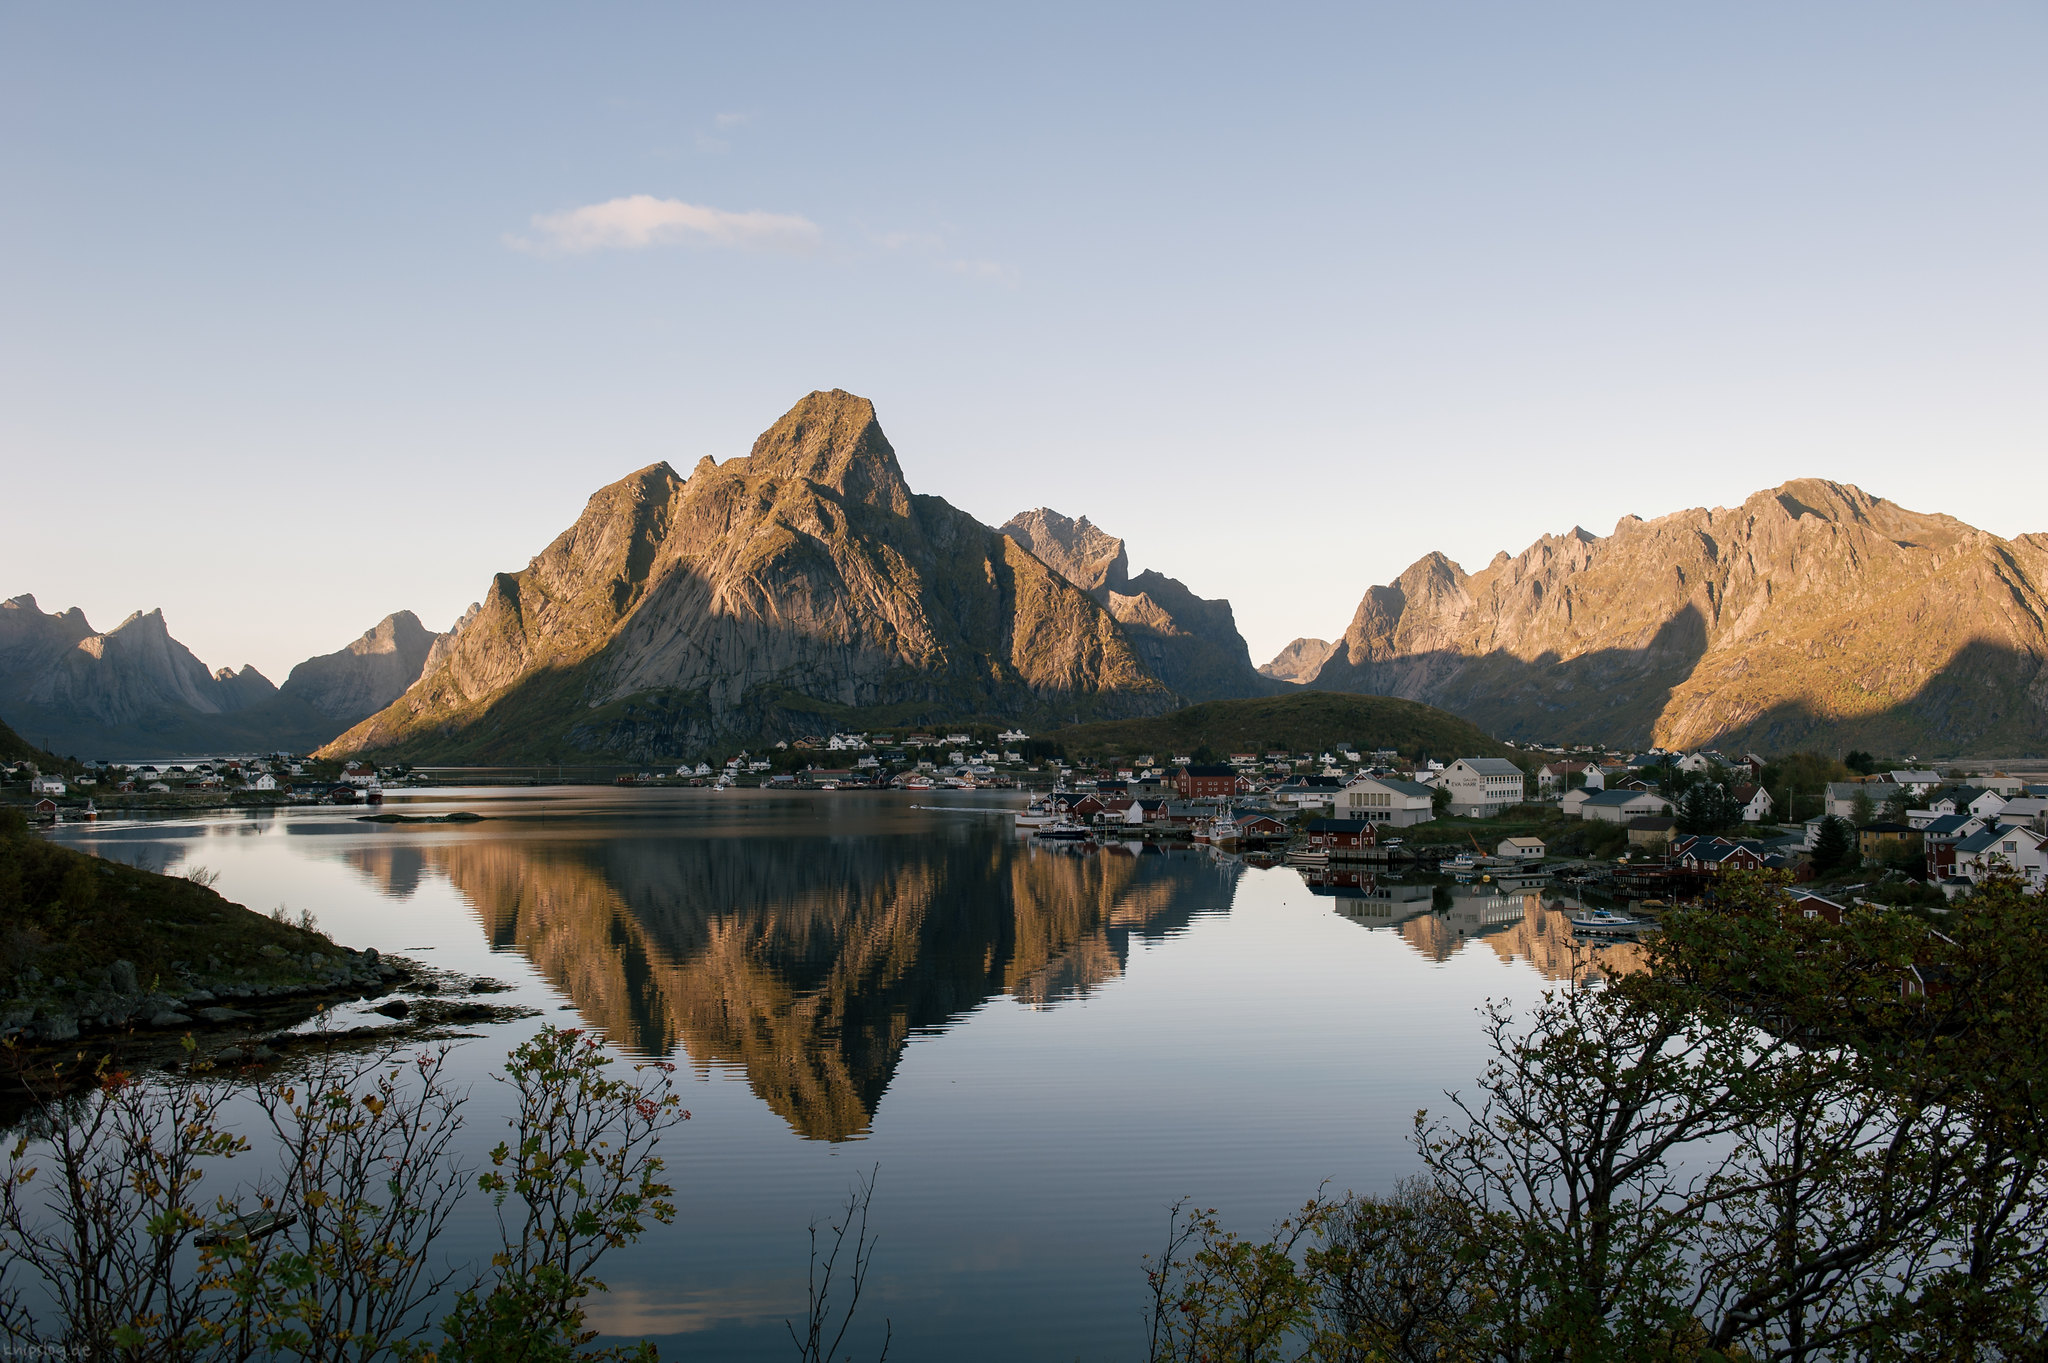 Reine in the afternoon light